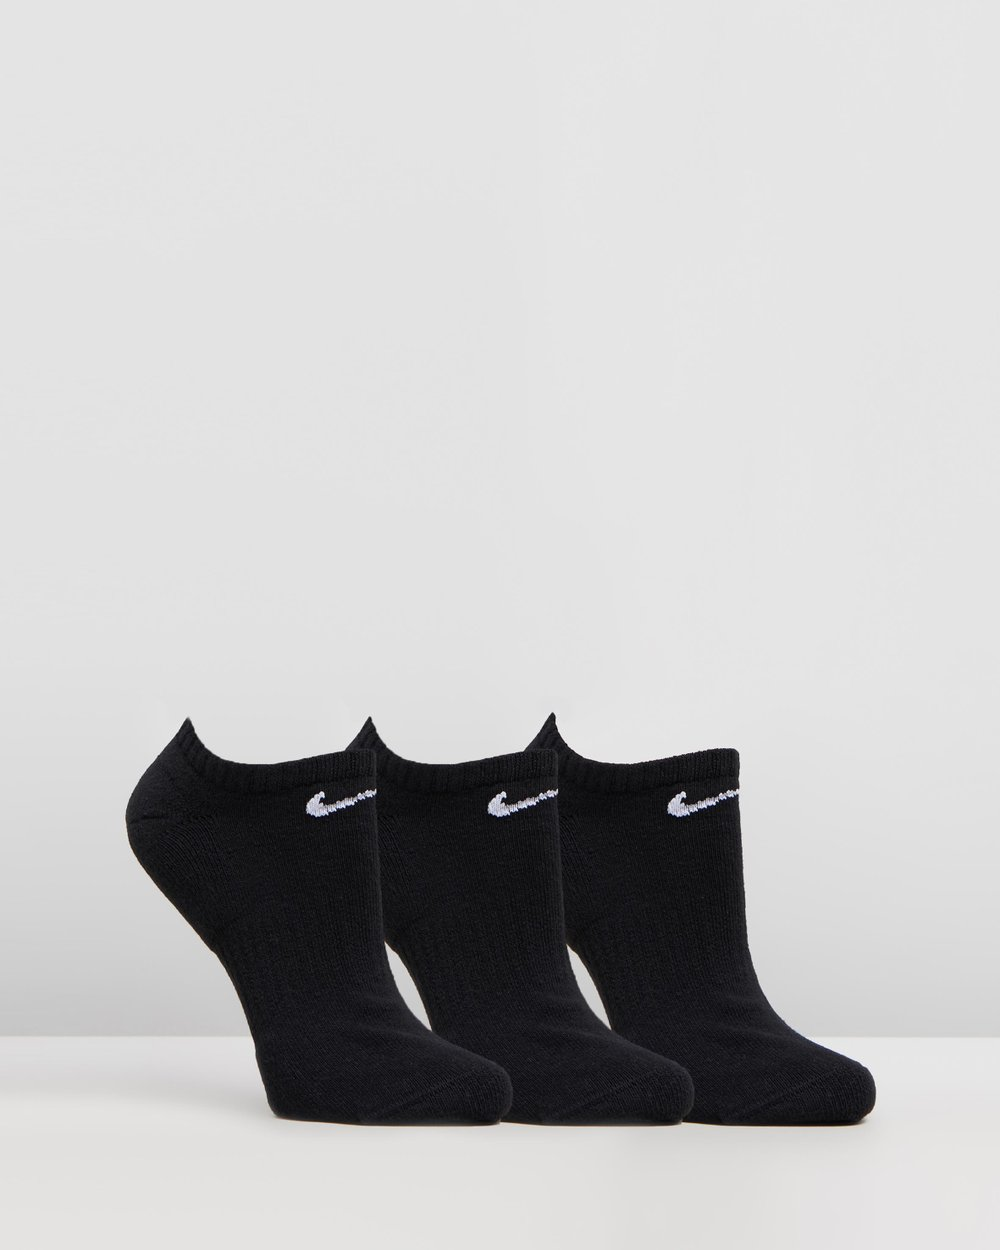 666b3bc261 Everyday Cushion No-Show 3-Pack by Nike Online